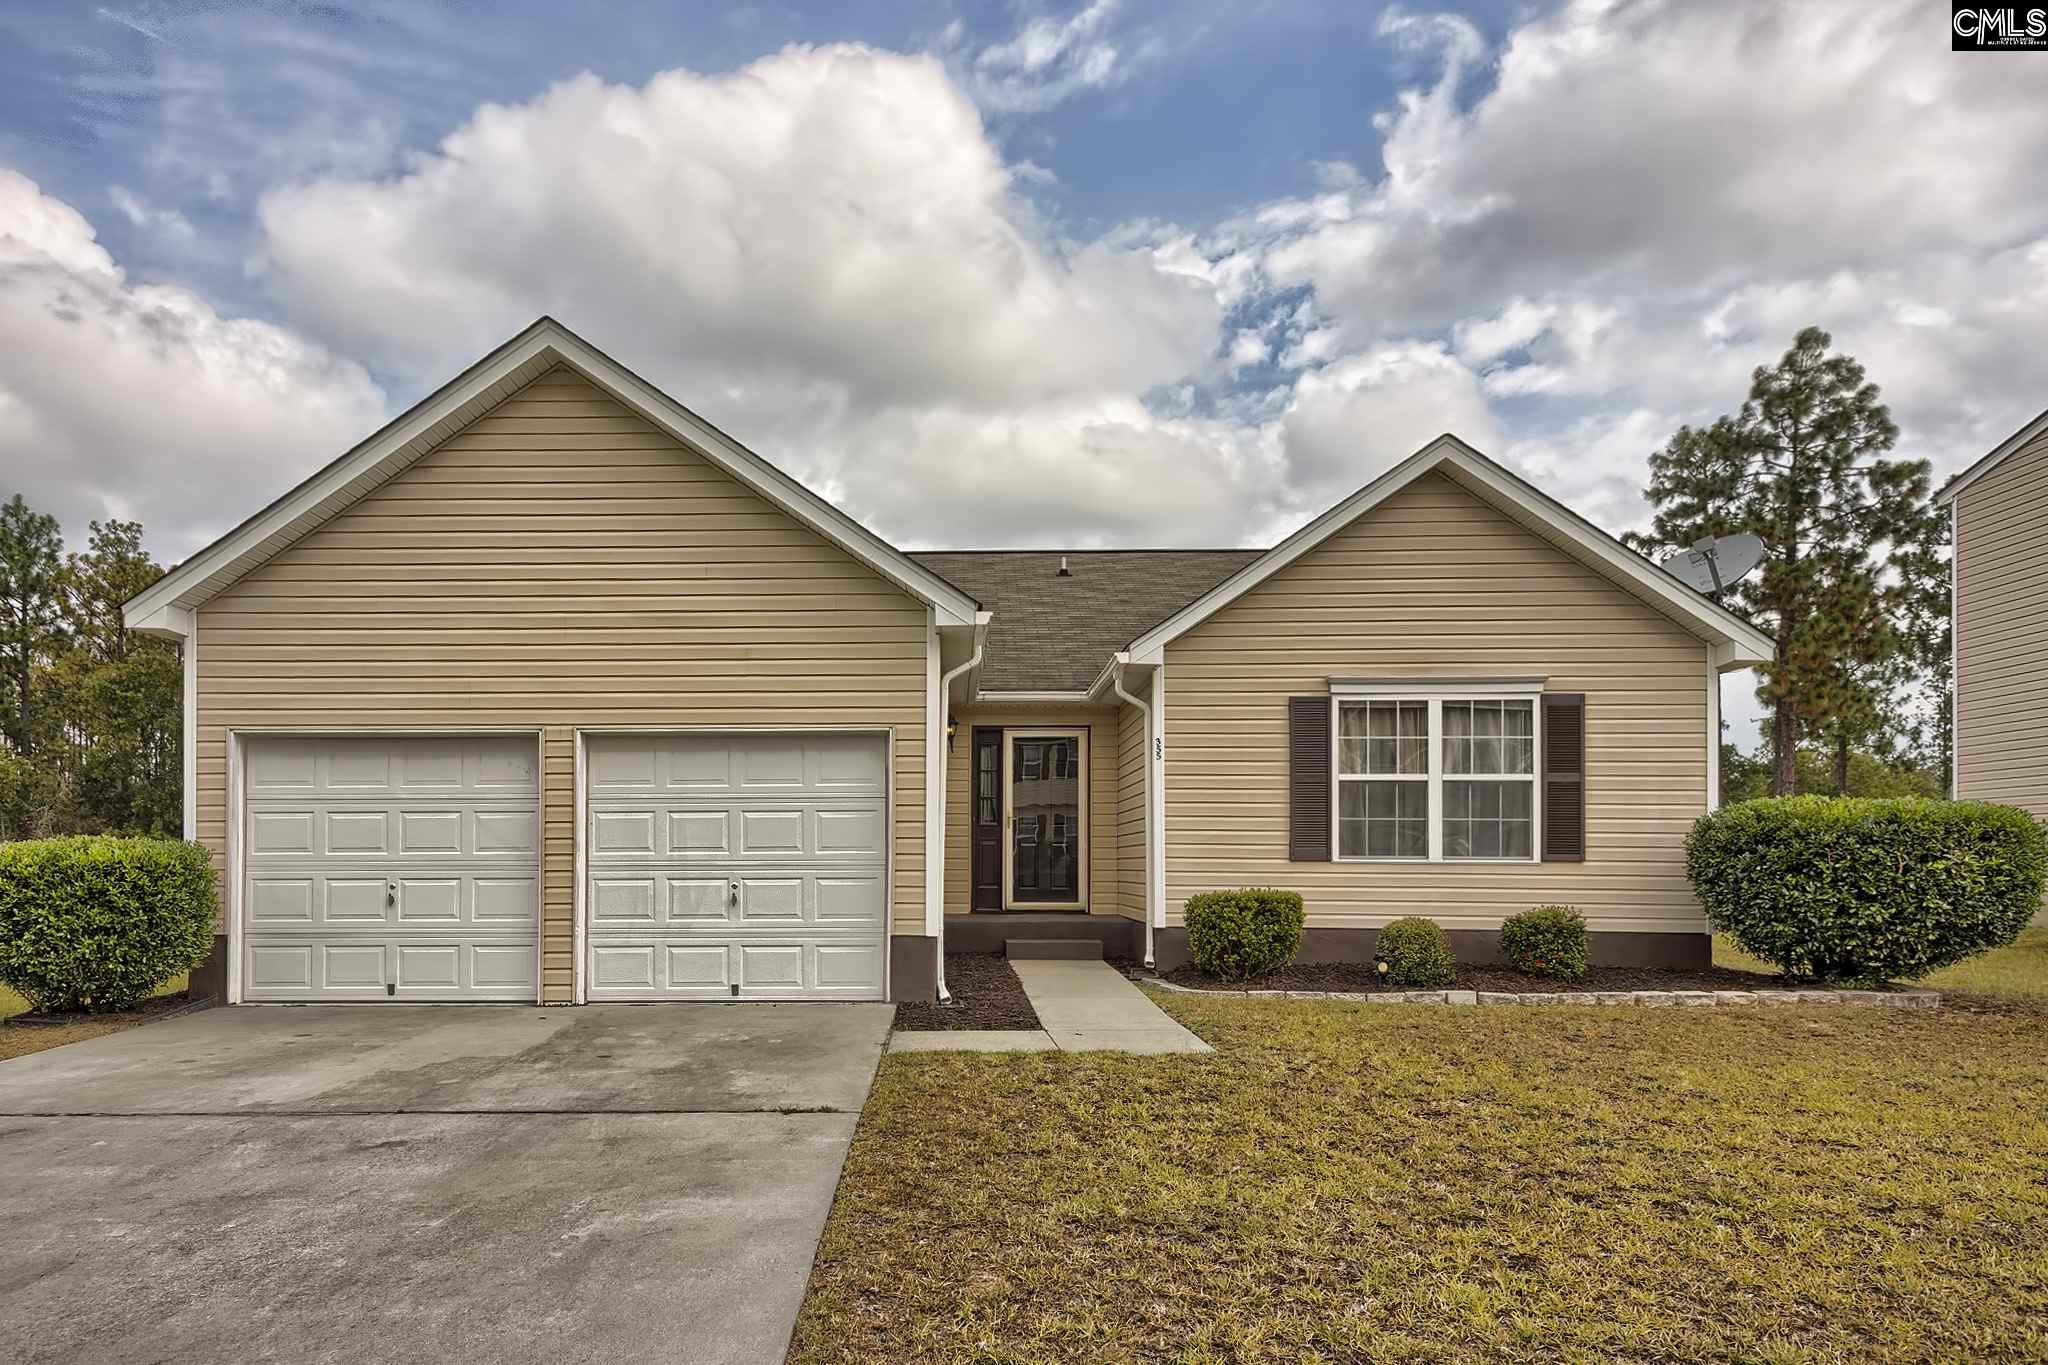 355 Woodcote Gaston, SC 29053